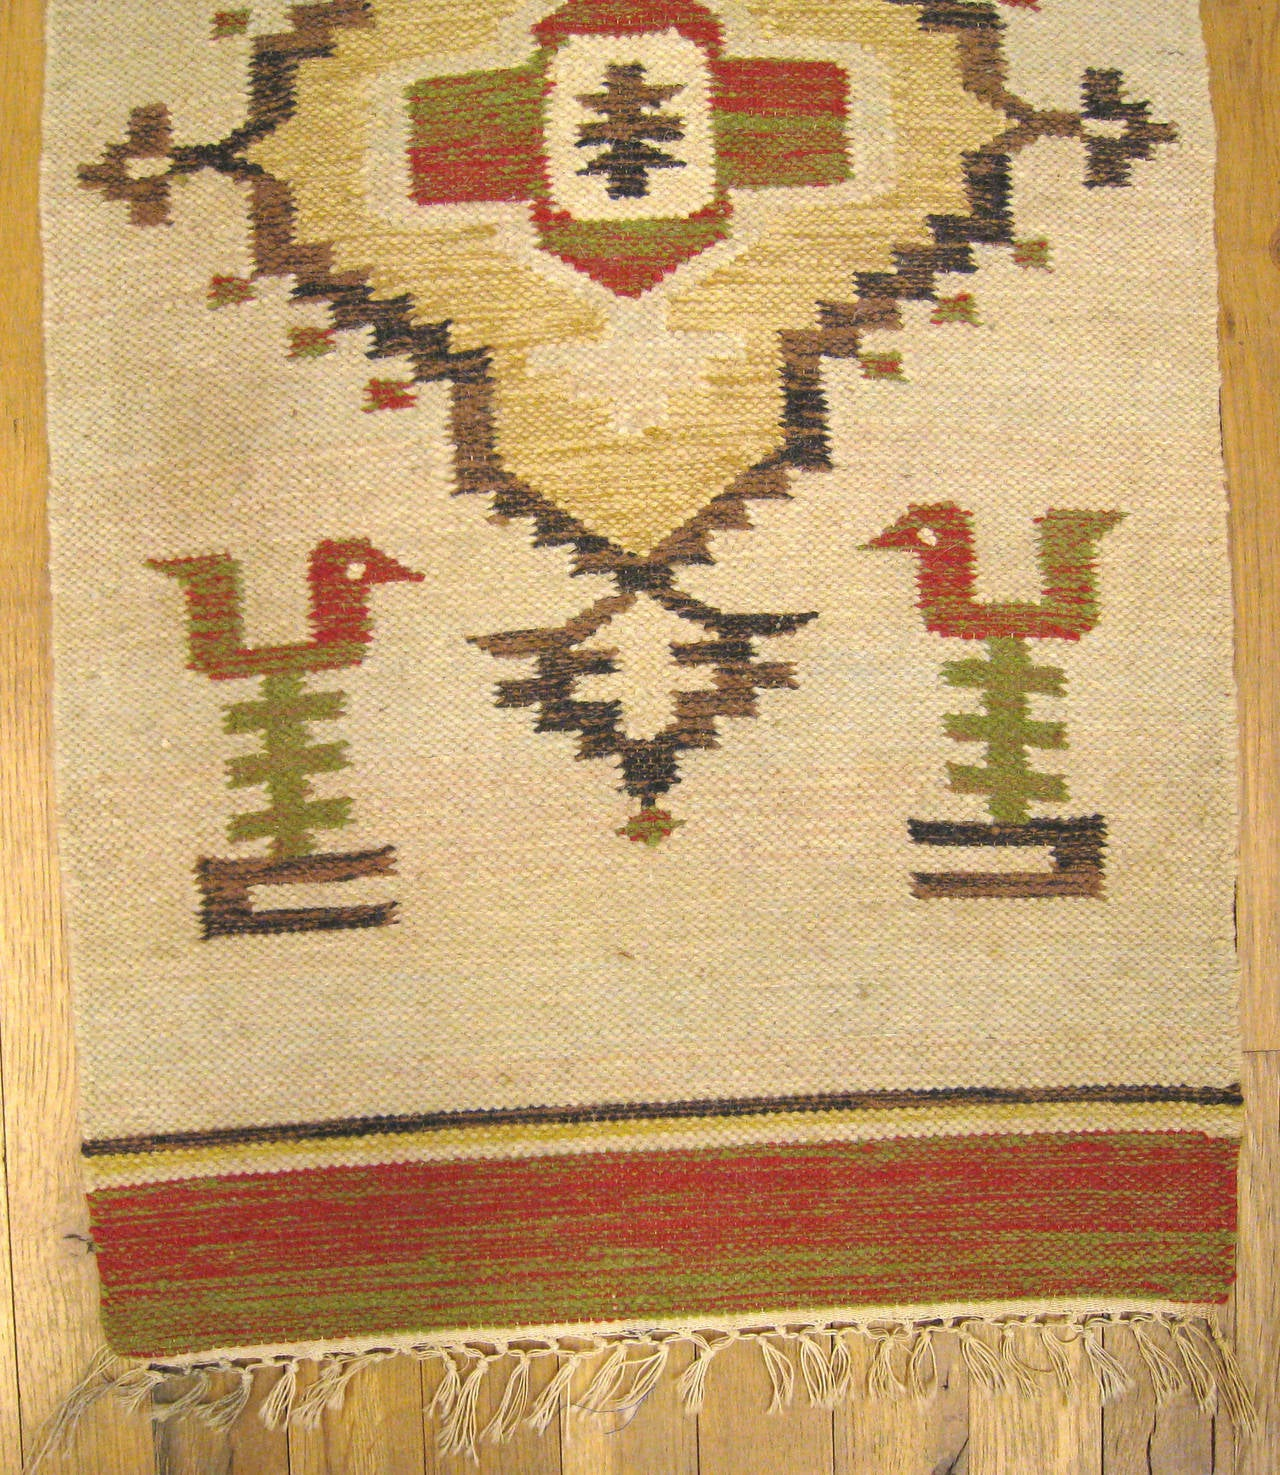 Vintage Mexican Zapotec Rug In Small Size With Stylized